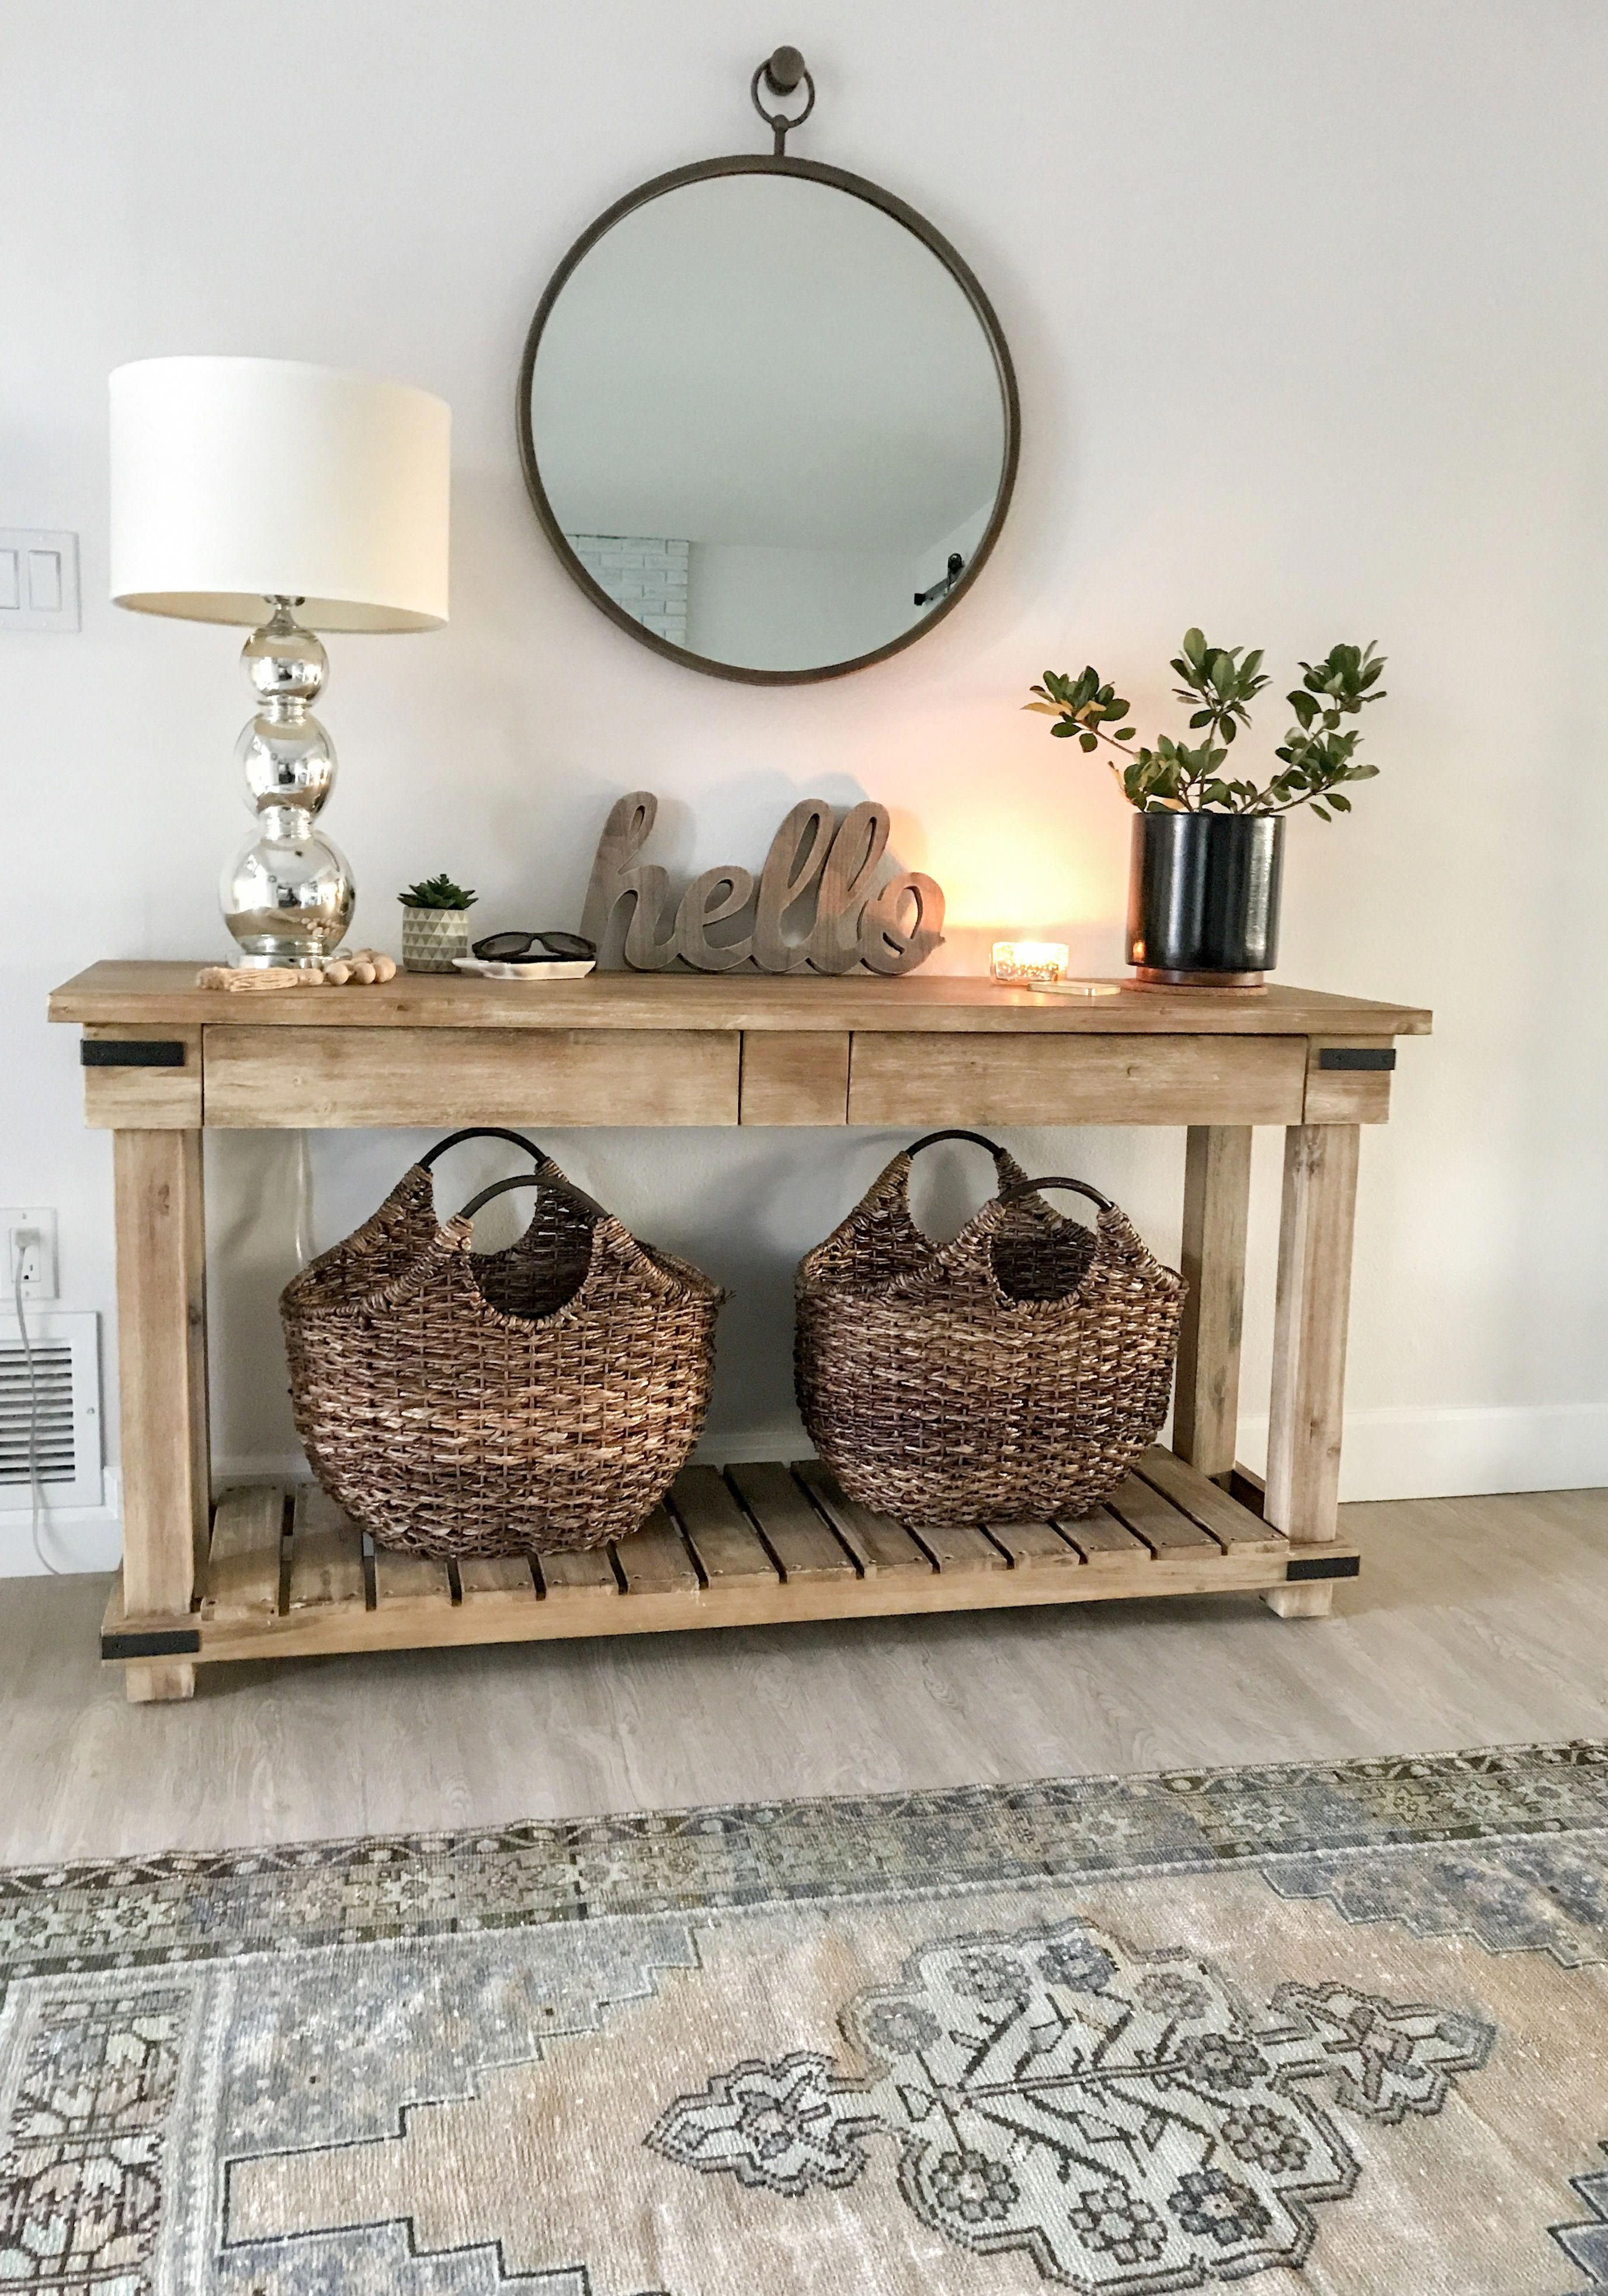 Fall Entryway Decor Easy Simple Ways To Welcome Fall Into Your Home Decoratingideas Fall Entryway Decor Entryway Decor Farm House Living Room